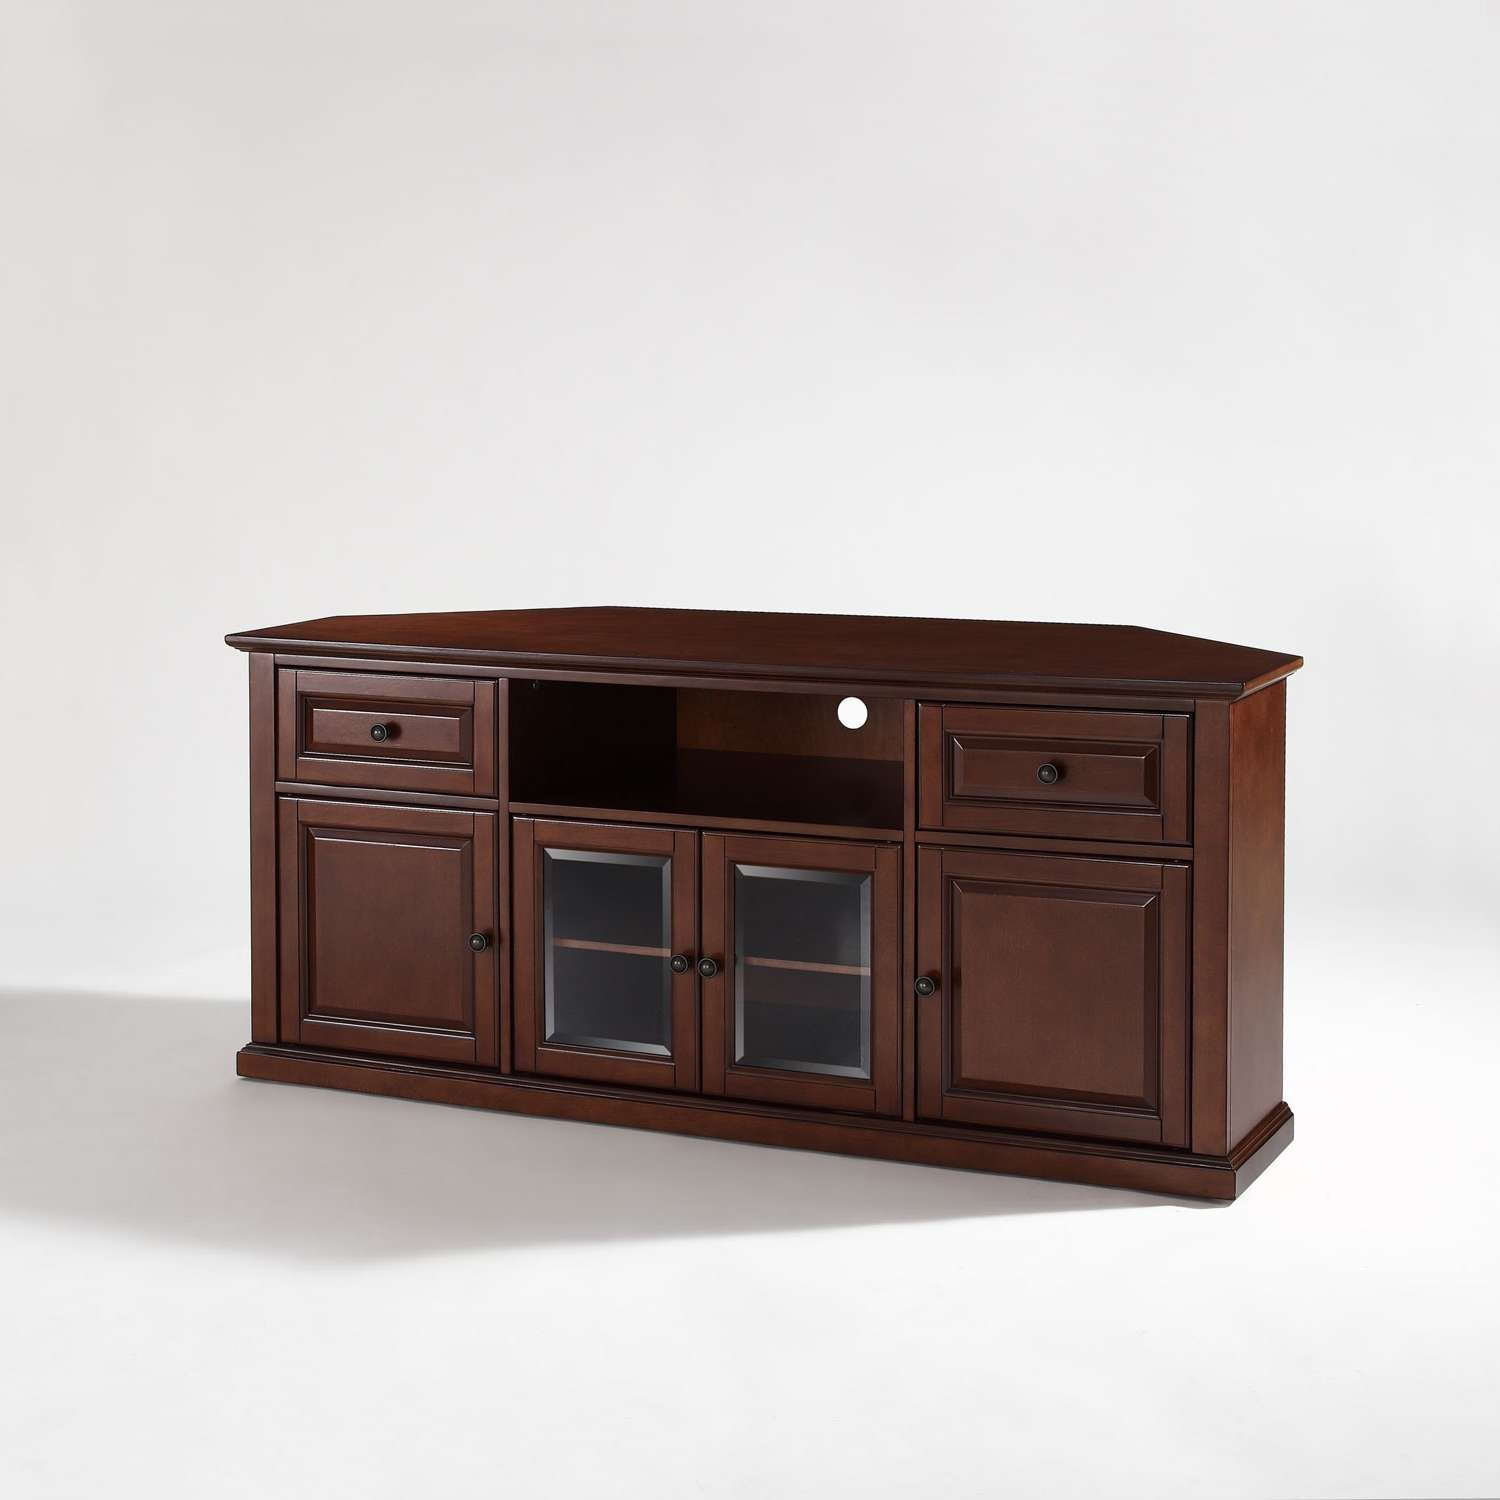 60 Inch Corner Tv Stand In Vintage Mahogany Crosley Furniture Throughout Cornet Tv Stands (Gallery 4 of 15)